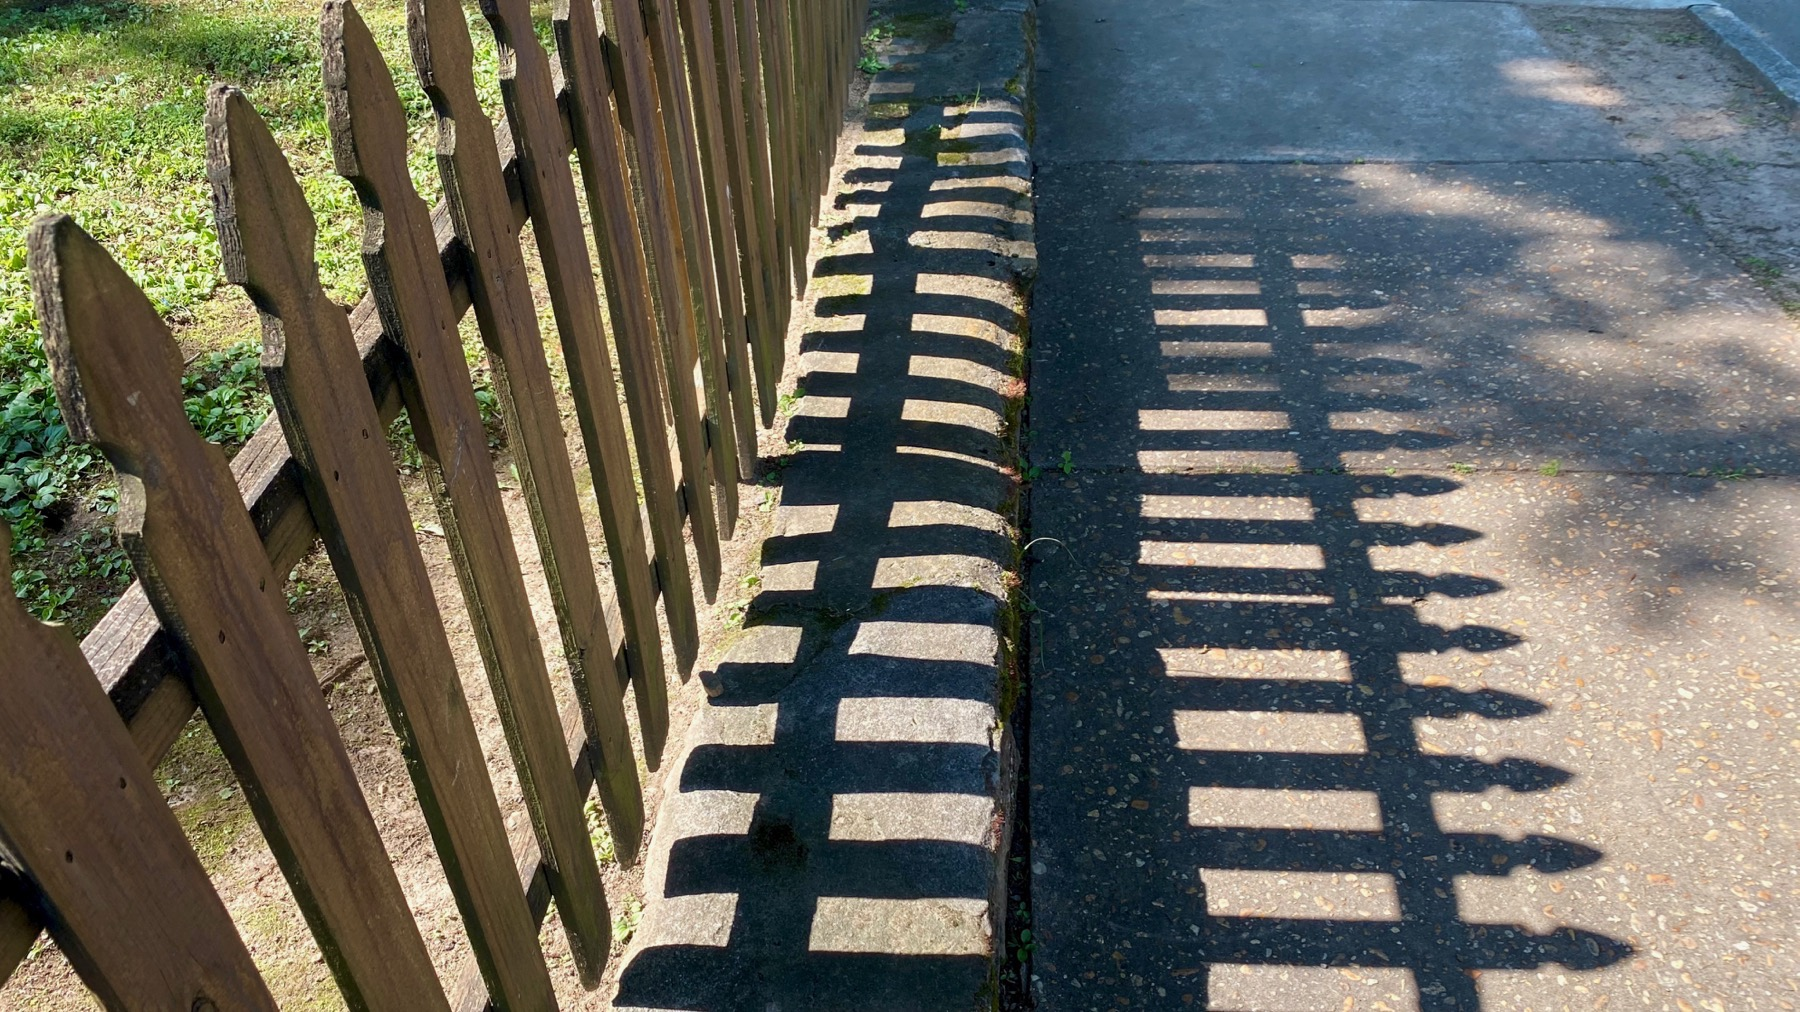 Fence shadow